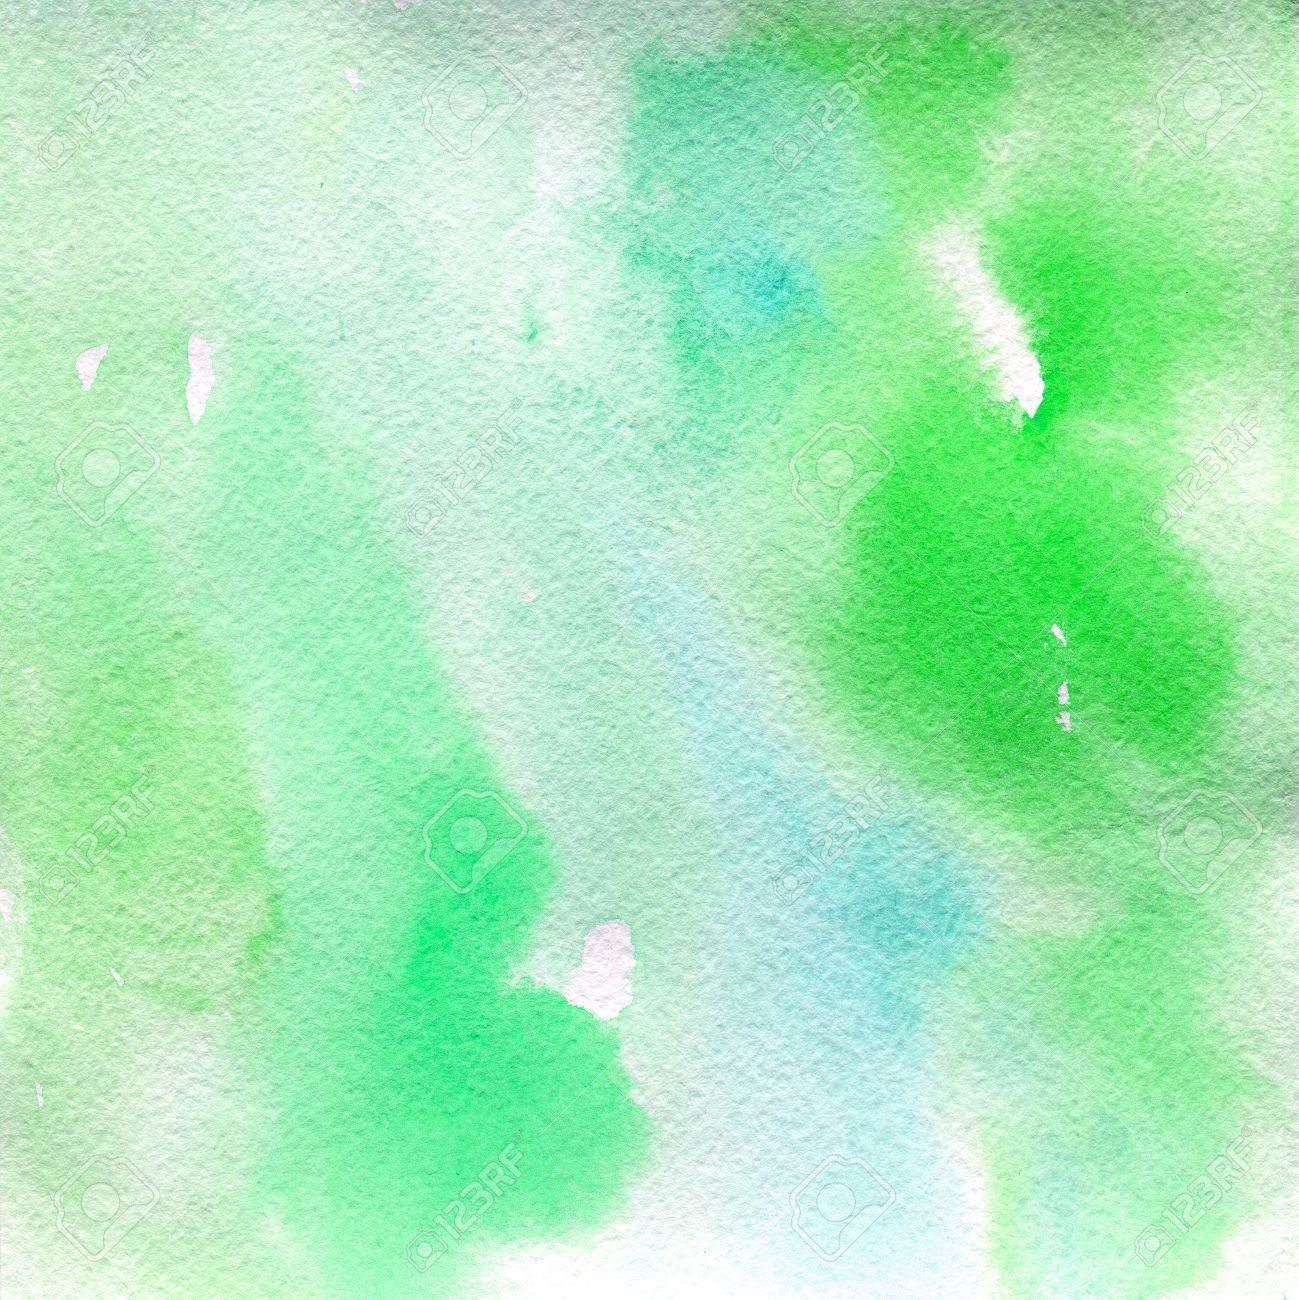 Good Wallpaper Marble Mint Green - 70978643-watercolor-texture-transparent-mint-blue-green-turquoise-shades-spots-watercolor-abstract-background  Pic_121024.jpg